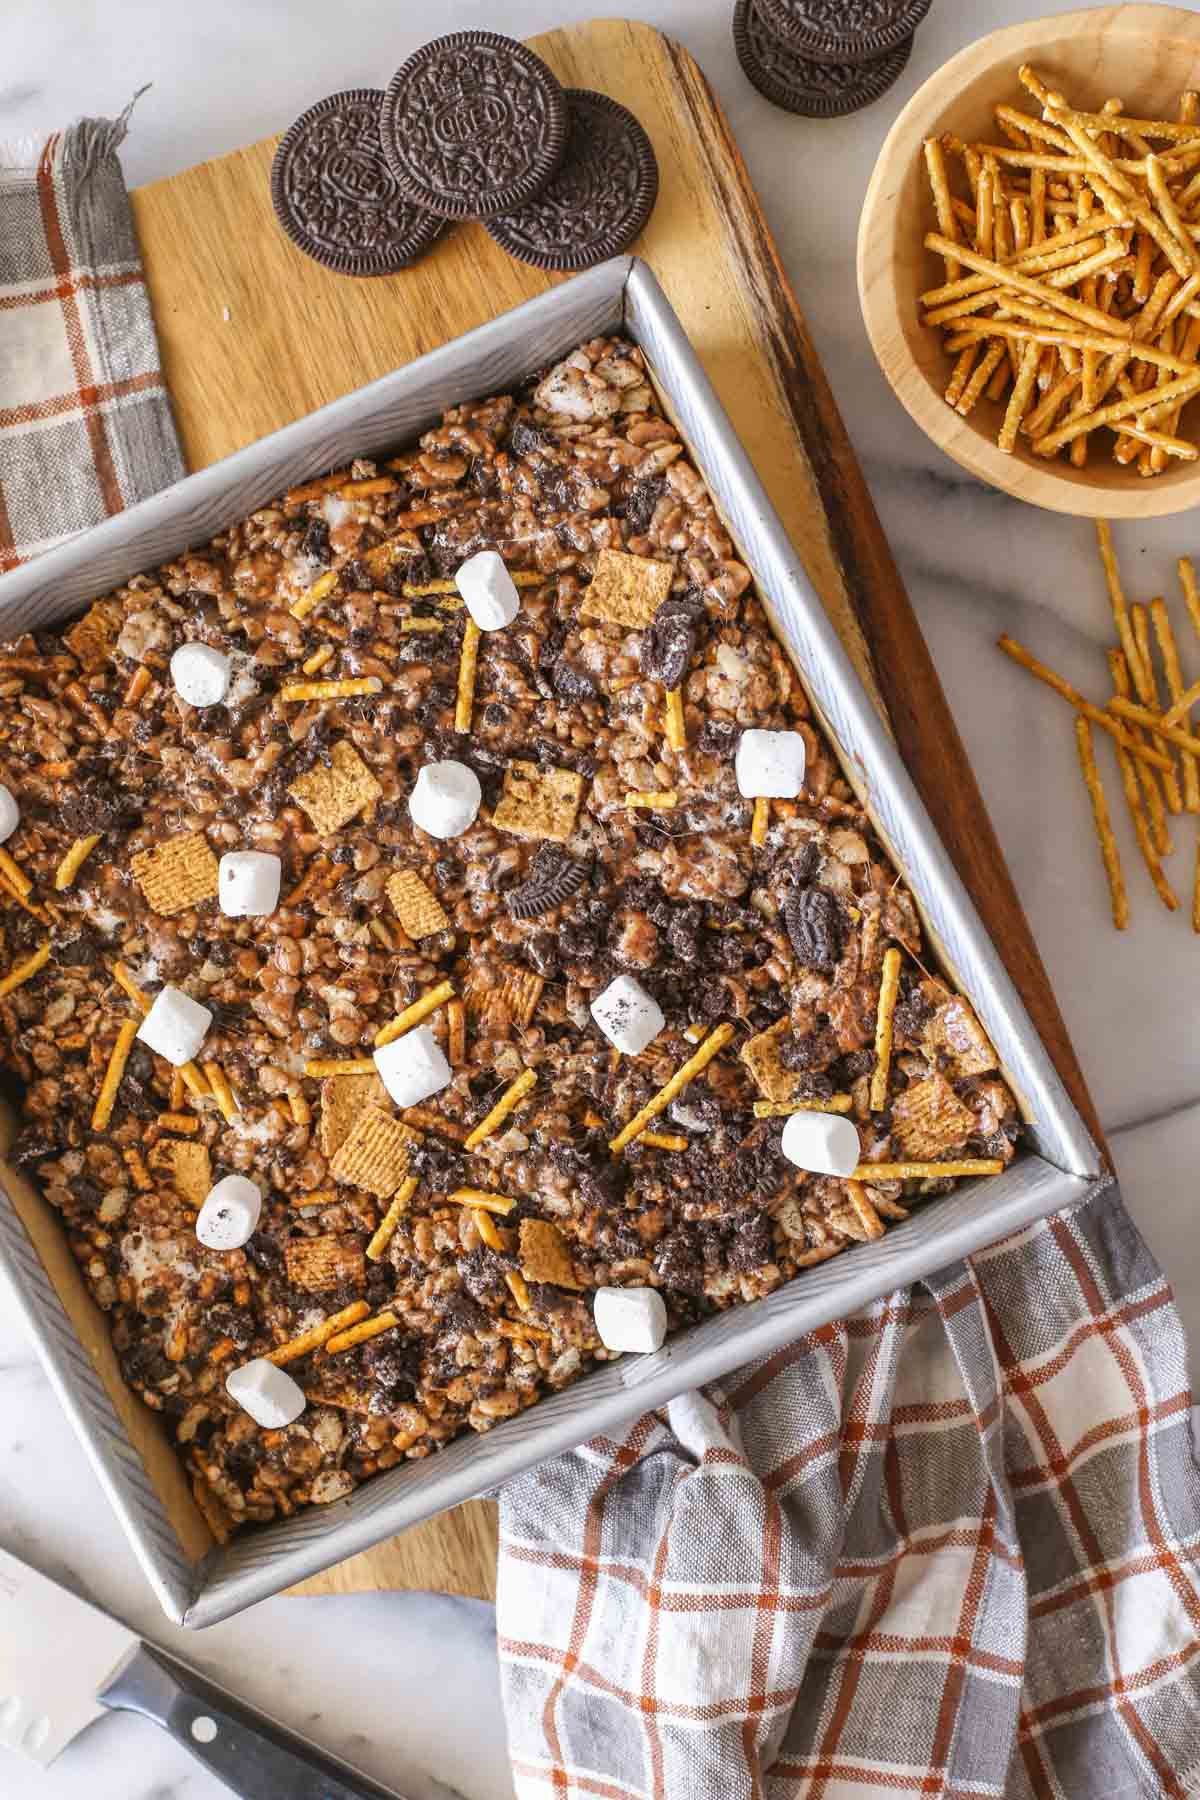 Overhead shot of a square pan of S'more Bars on a wood cutting board, with some whole Oreo cookies and a small wood bowl of pretzel sticks next to it.